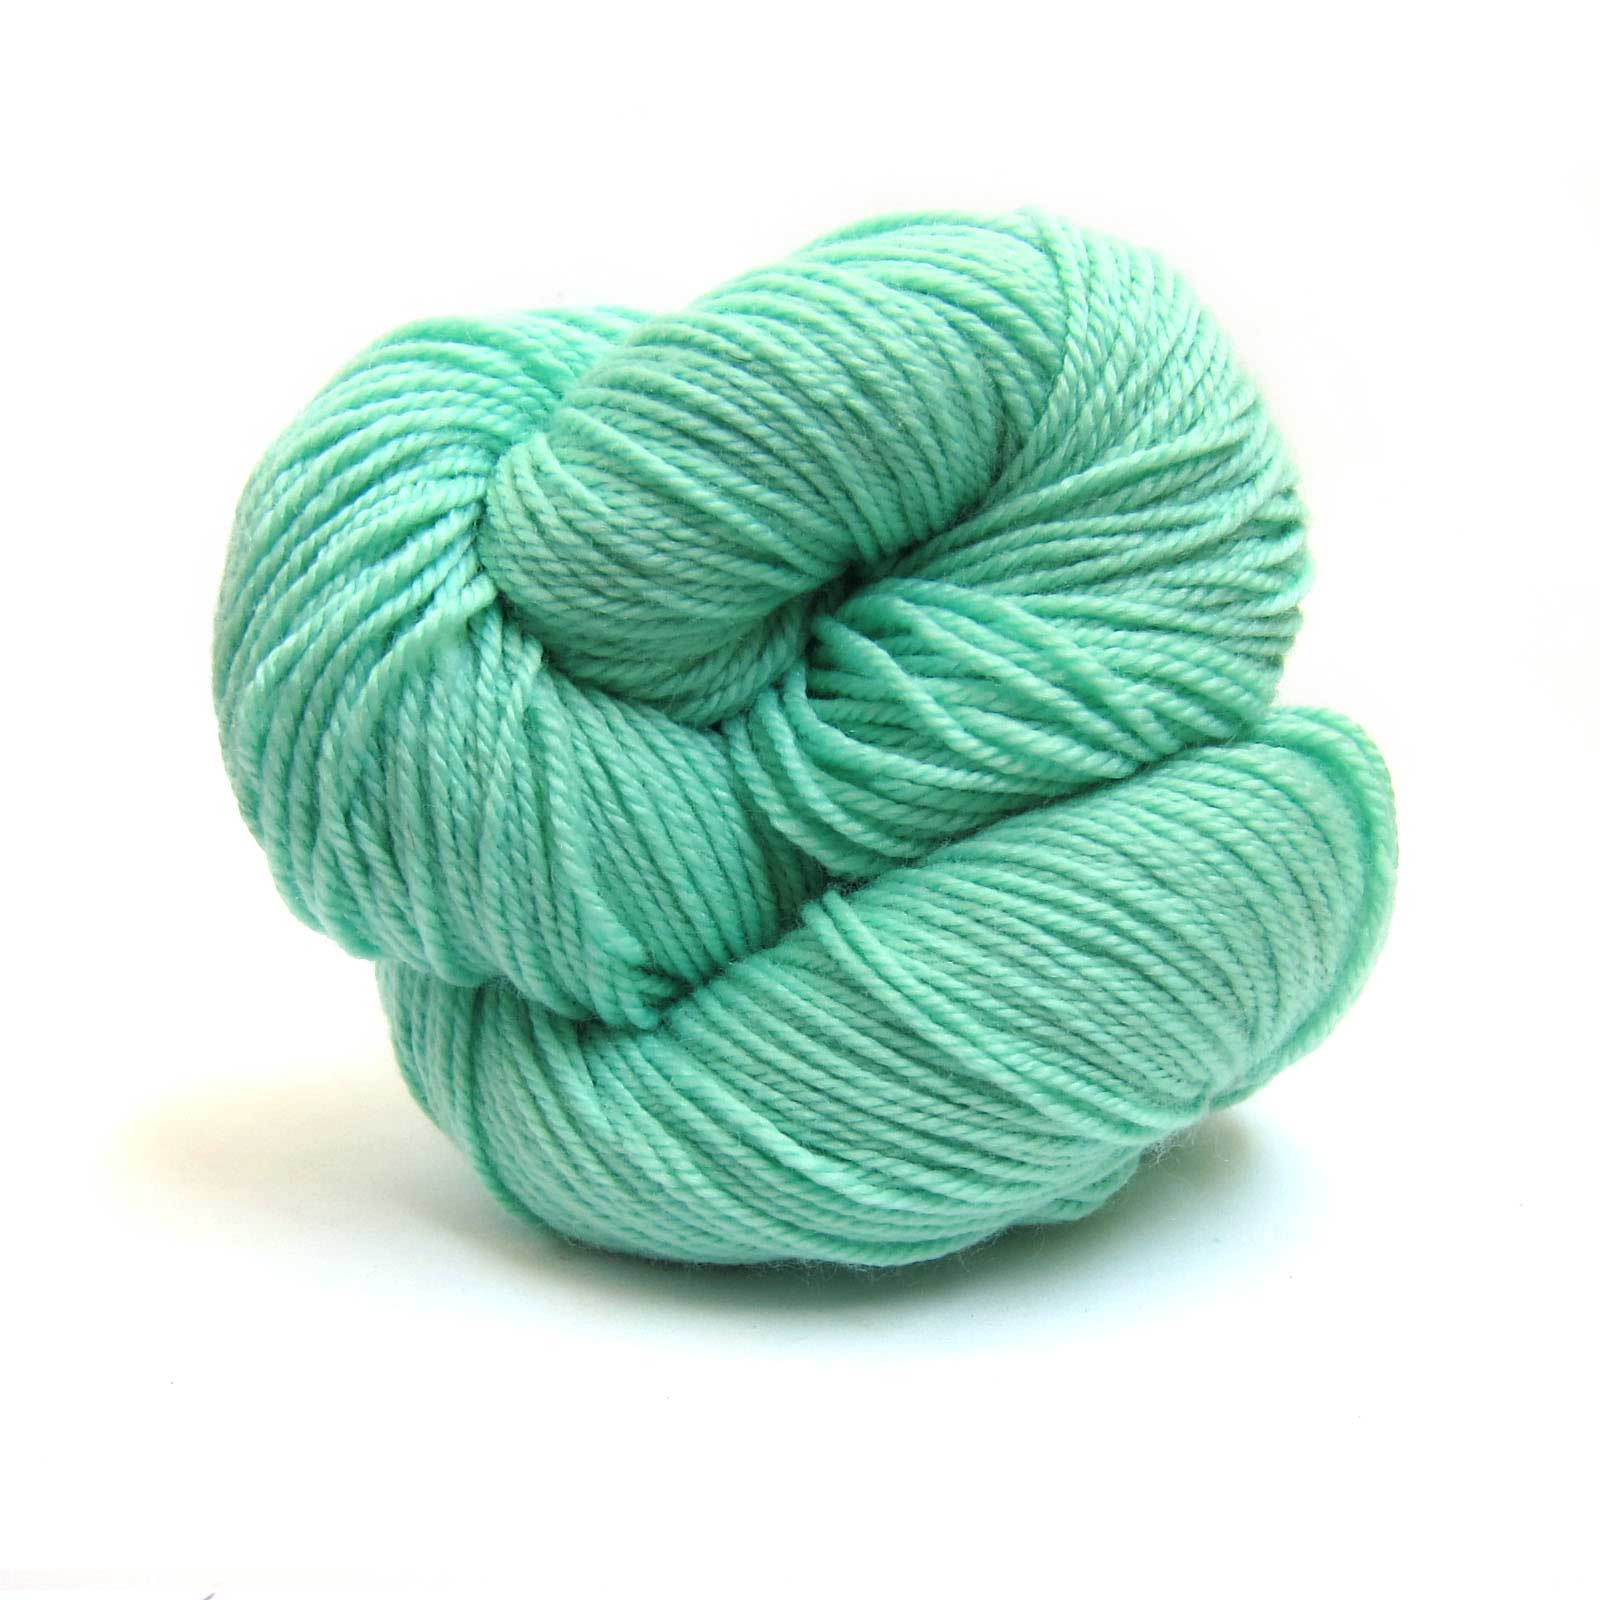 Mint Louet Gems 100% Merino Superwash Yarn